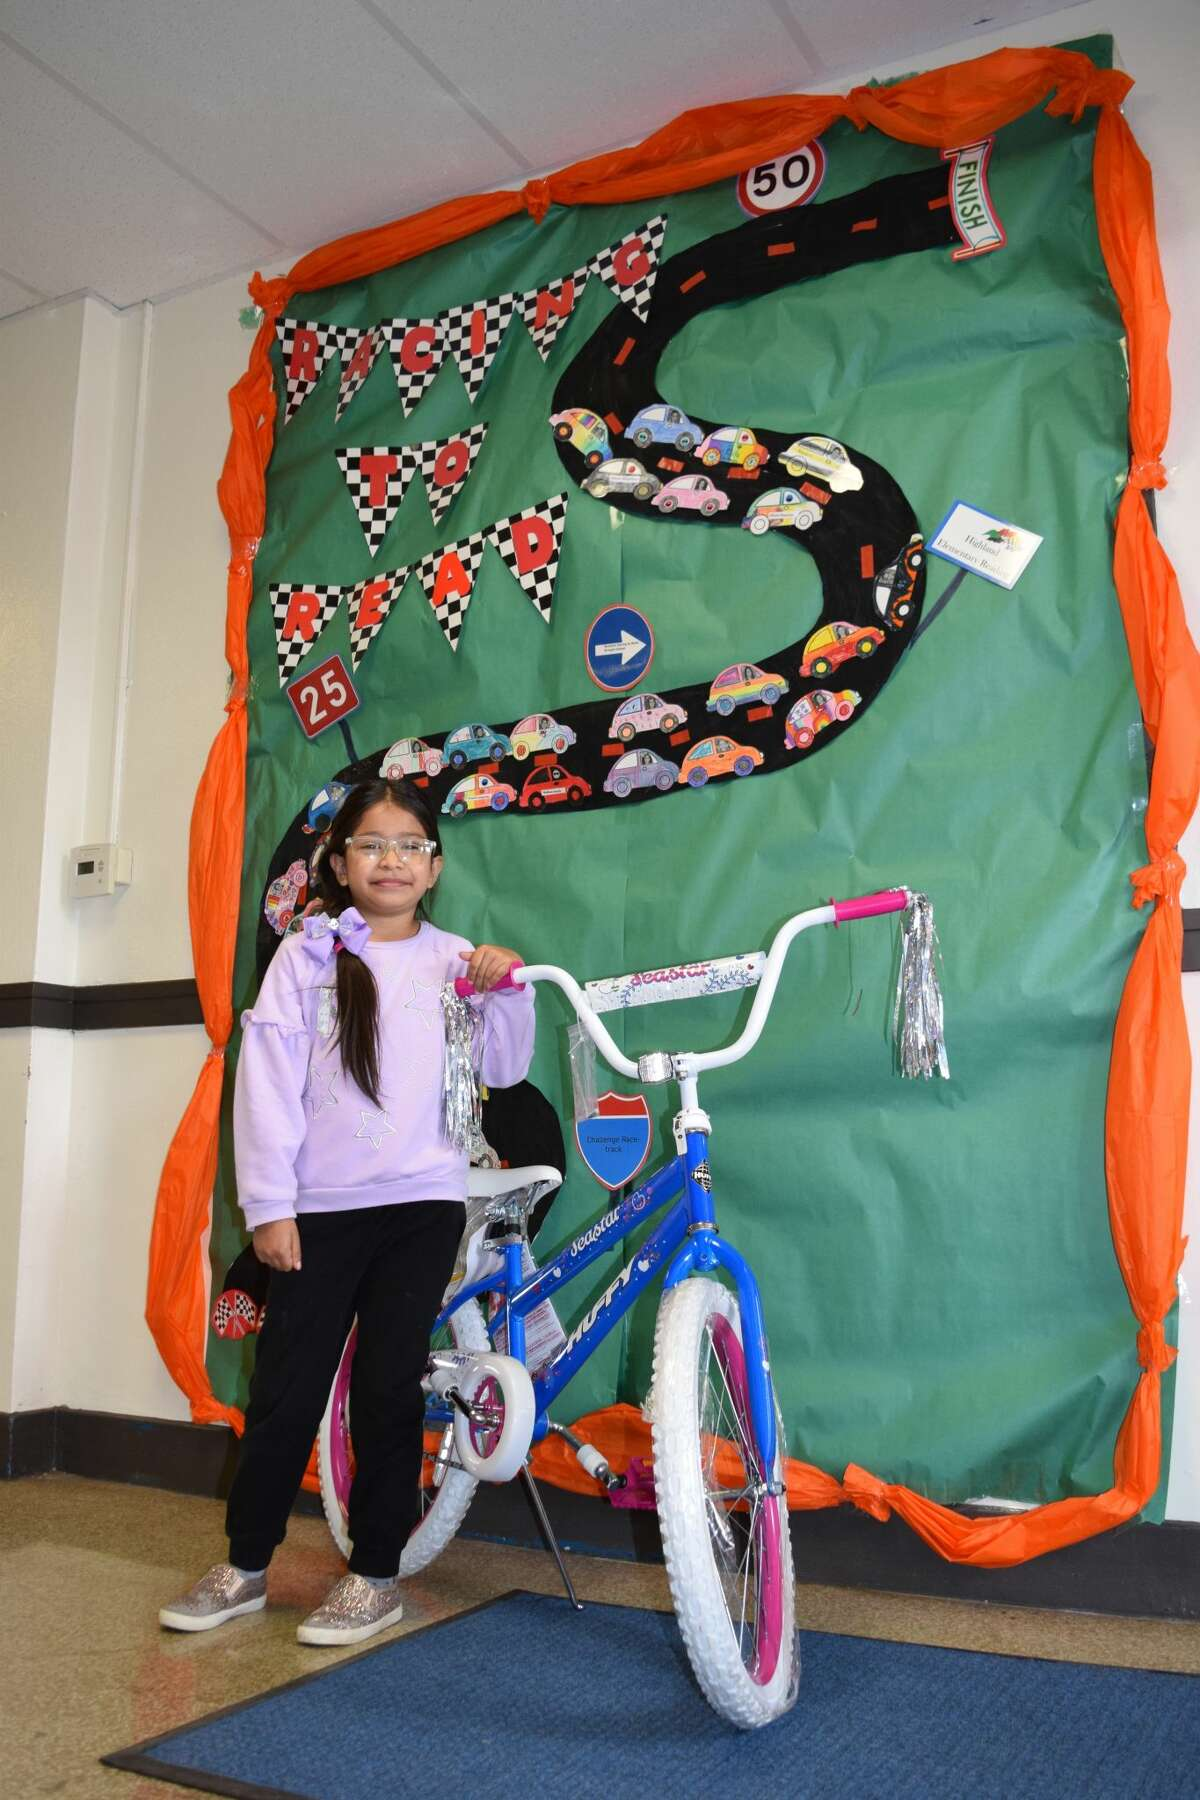 Highland second grader Hailey Cruz stands with the prize bicycle she won in a drawing for reaching her reading challenge goal for the spring semester of the 2020-2021 school year.